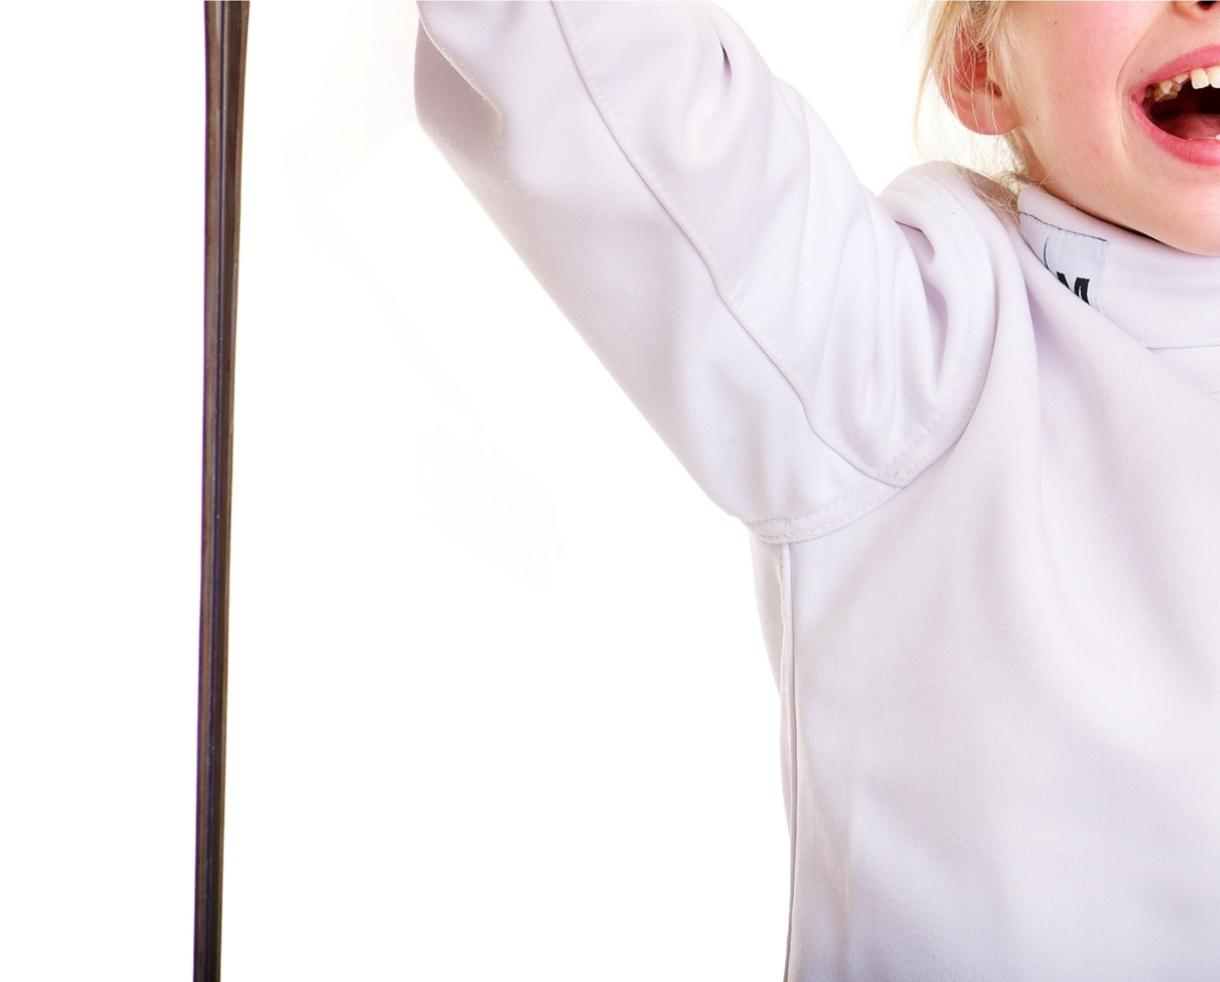 Little Musketeers - 1 Group Class a Week + Open Practice for Ages 5-7 at Invicta Sports